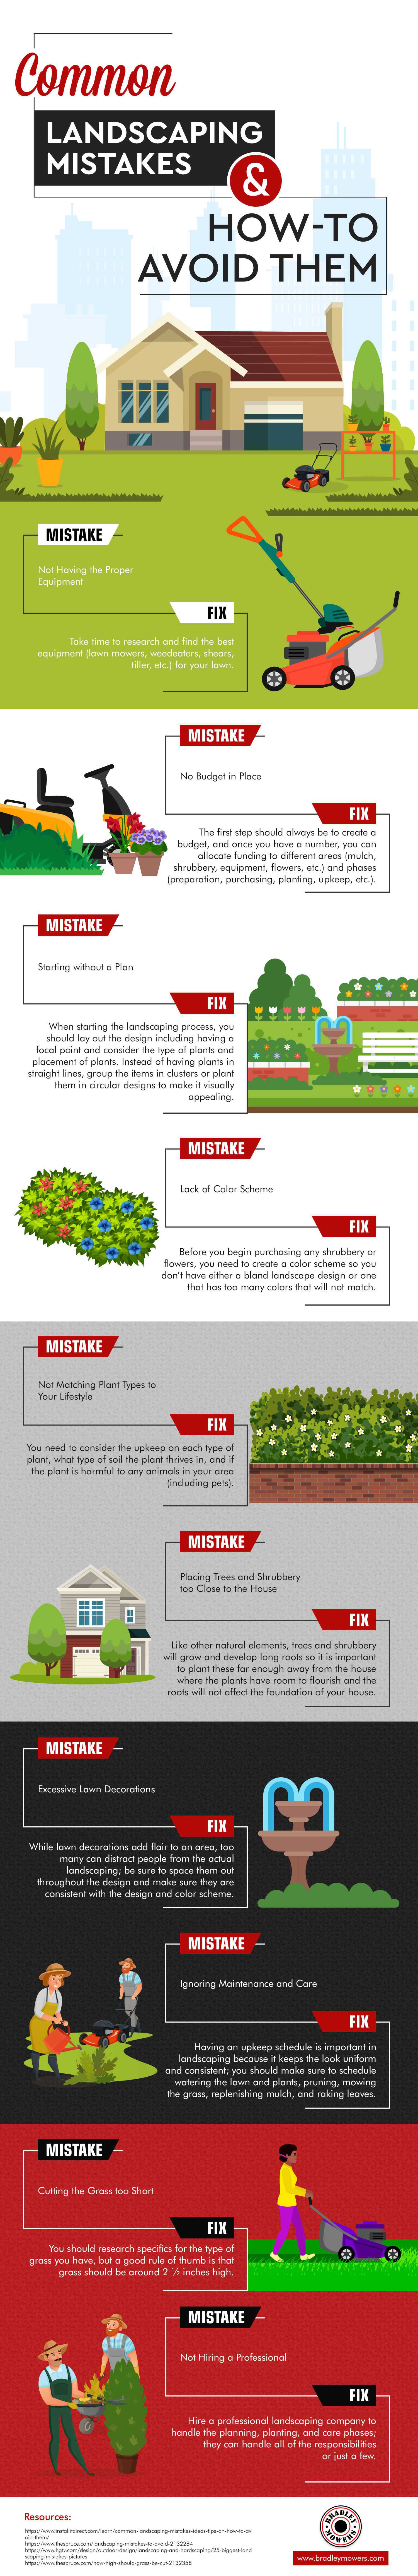 Landscaping is an important part of having a yard because landscape is the first thing people see when they arrive at a space. Before beginning, it is important to create a budget and develop a plan and color scheme.